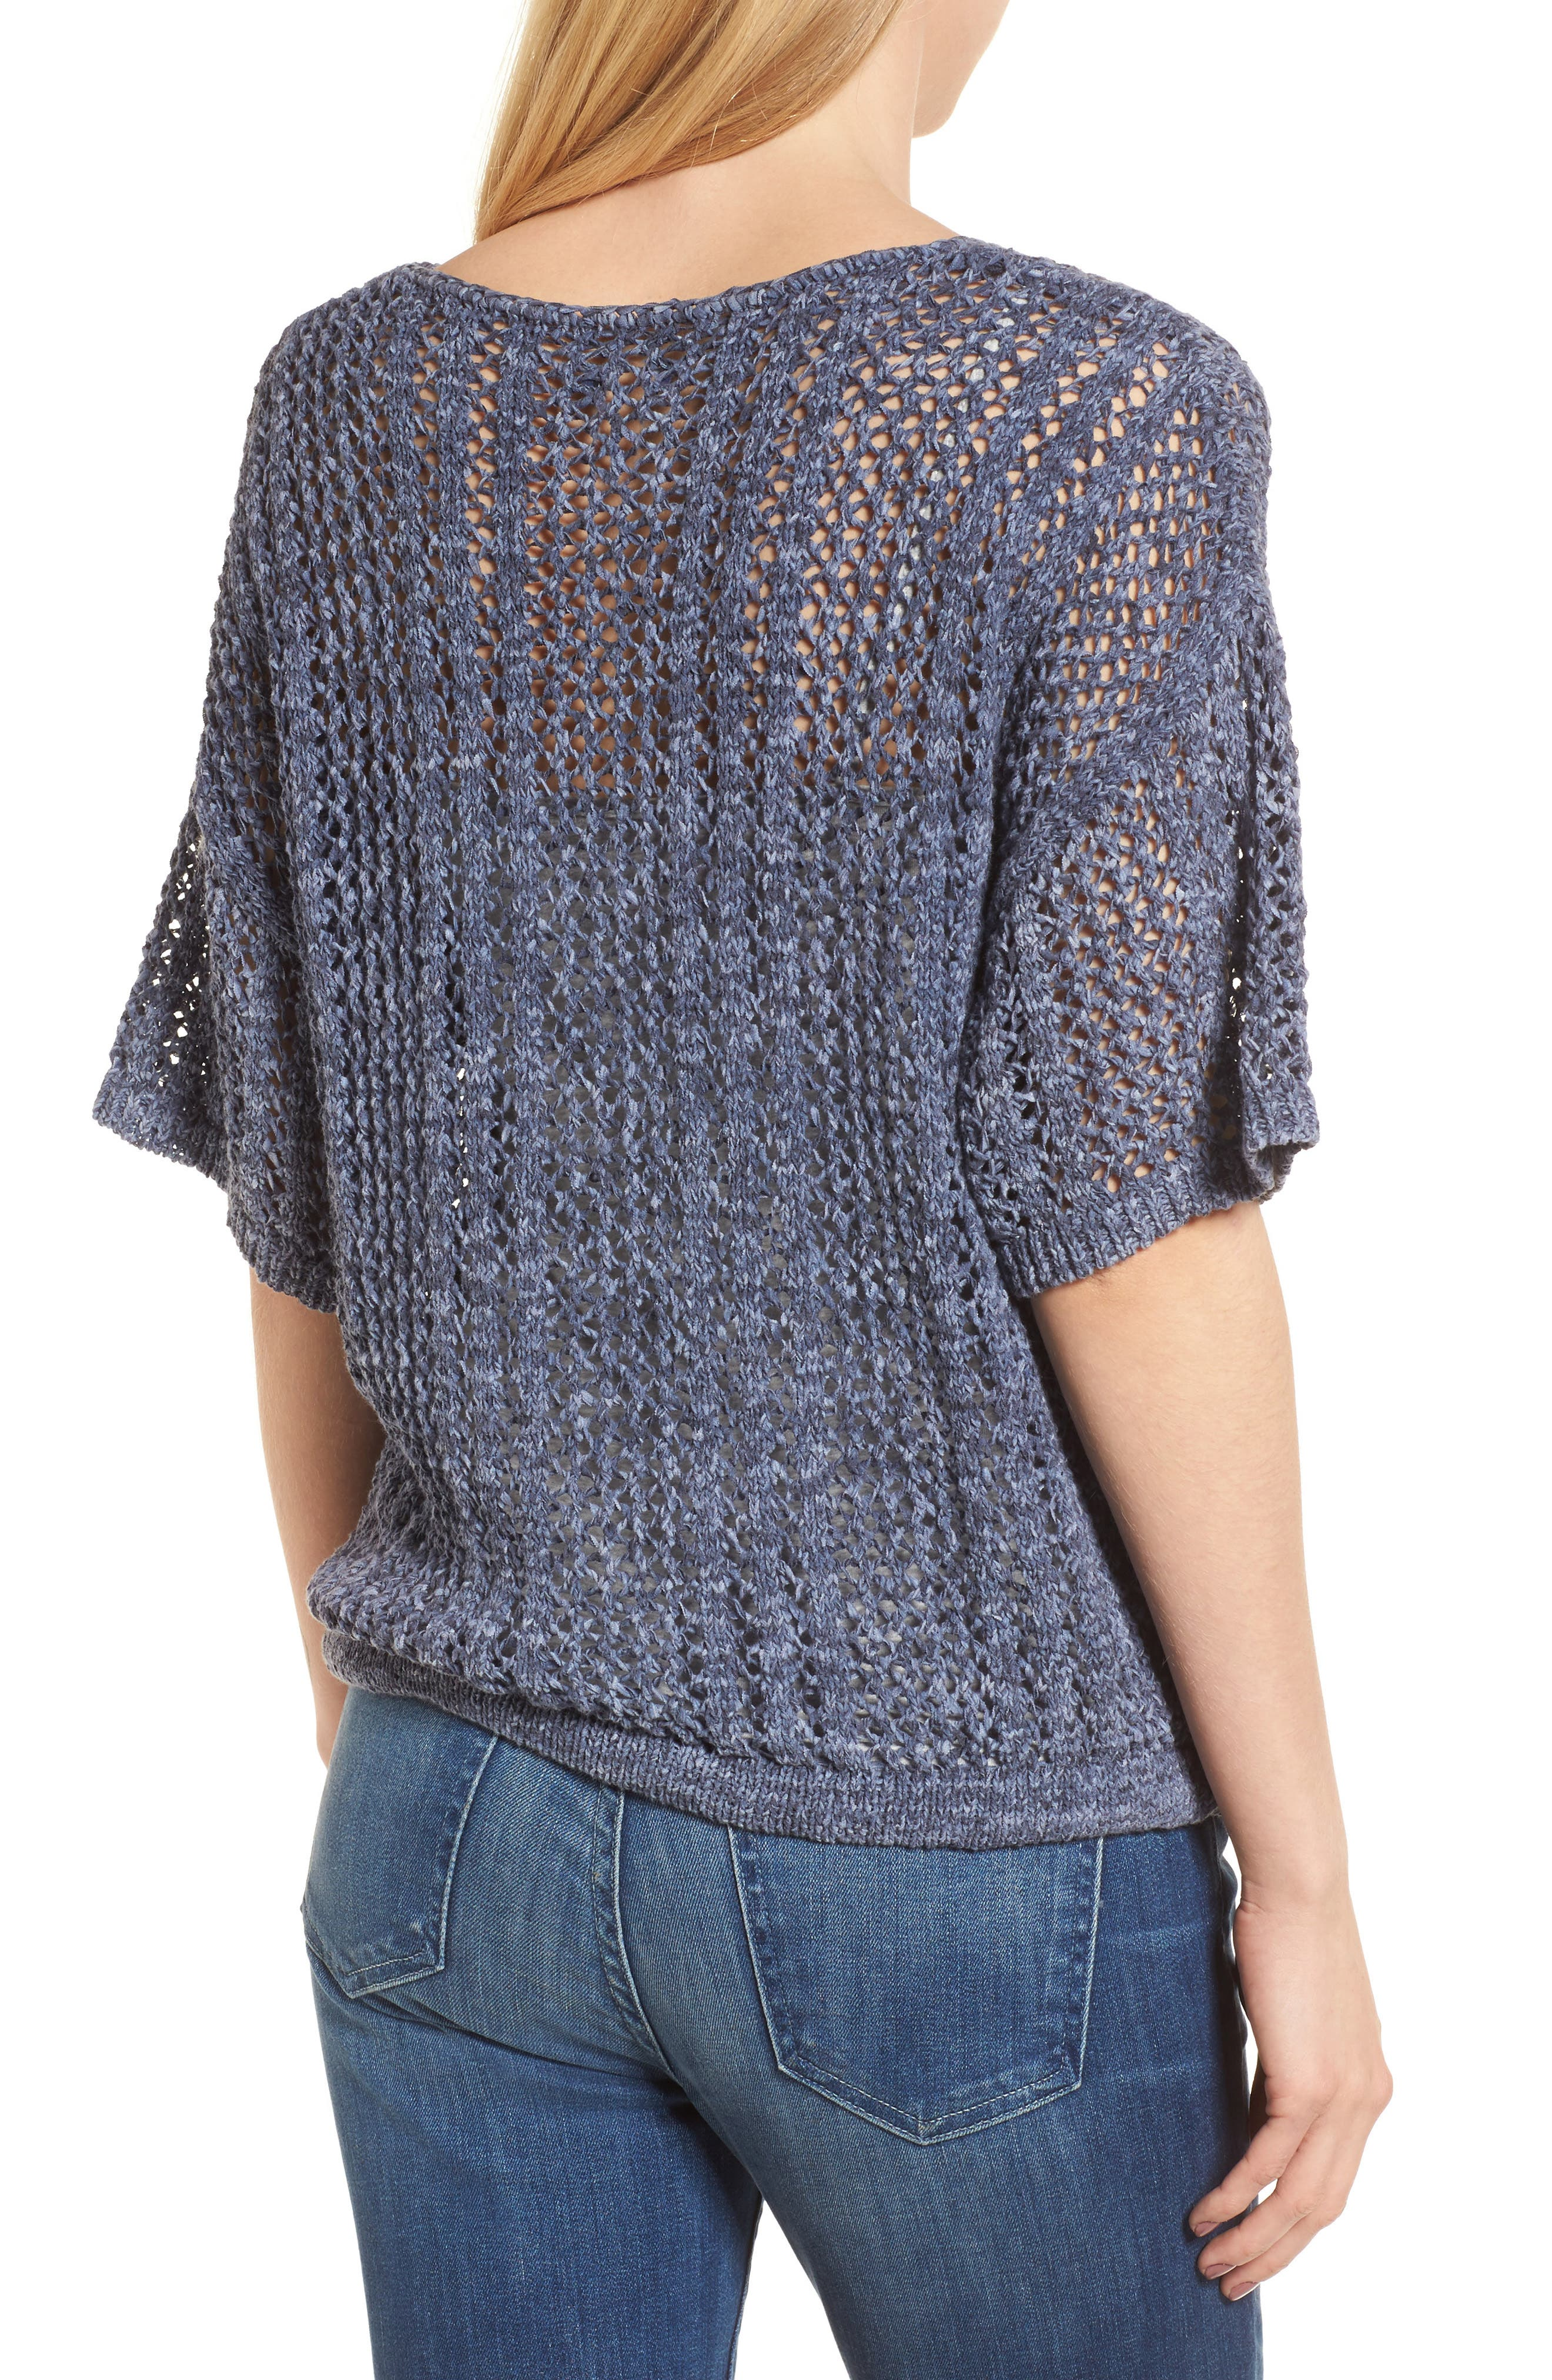 Knox Crochet Sweater,                             Alternate thumbnail 2, color,                             Navy